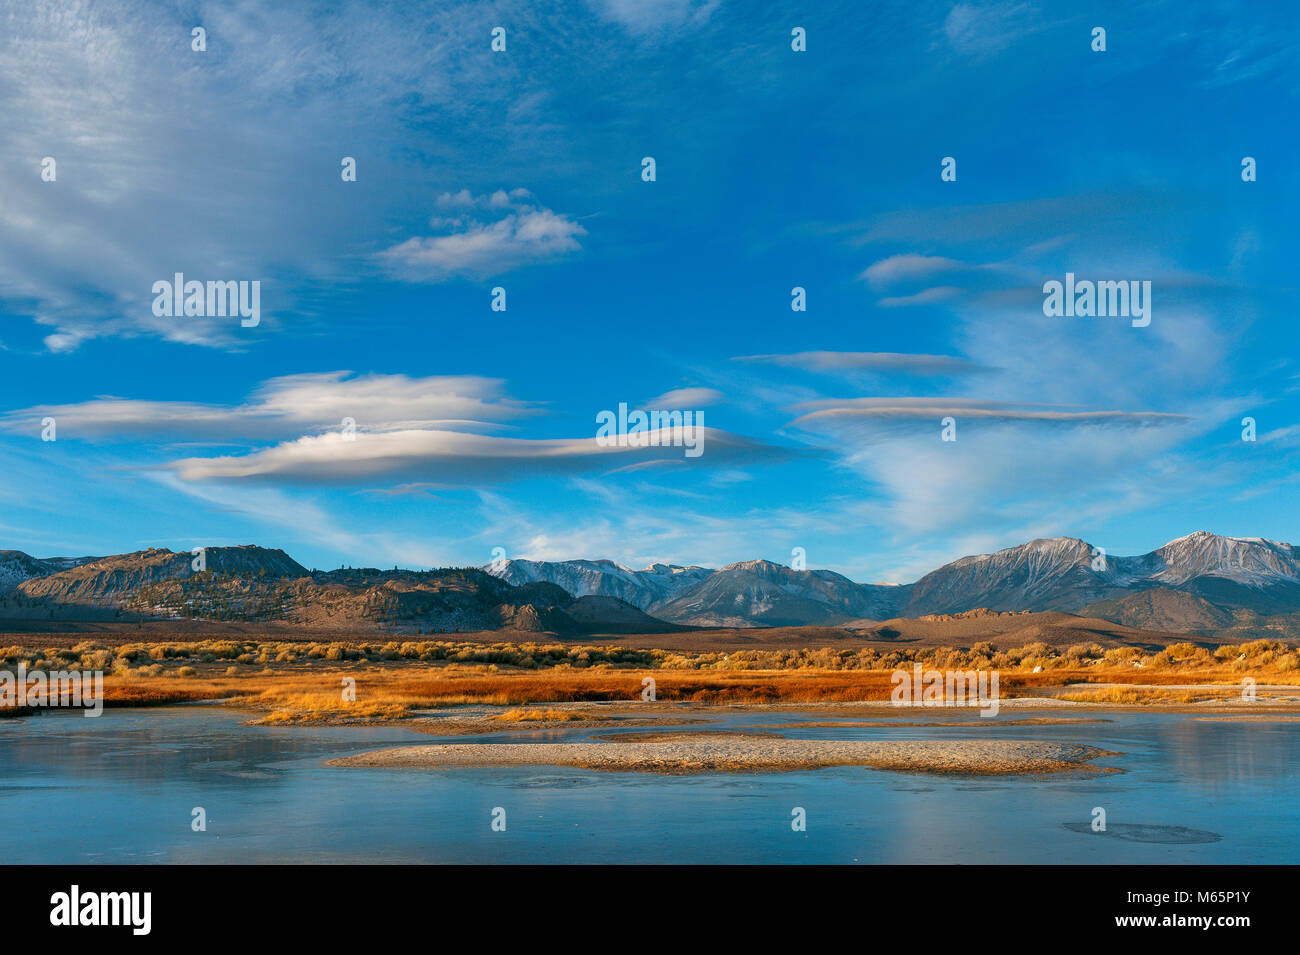 Wetlands, Mono Lake, Mono Basin National Forest Scenic Area, Inyo National Forest, Eastern Sierra, California - Stock Image